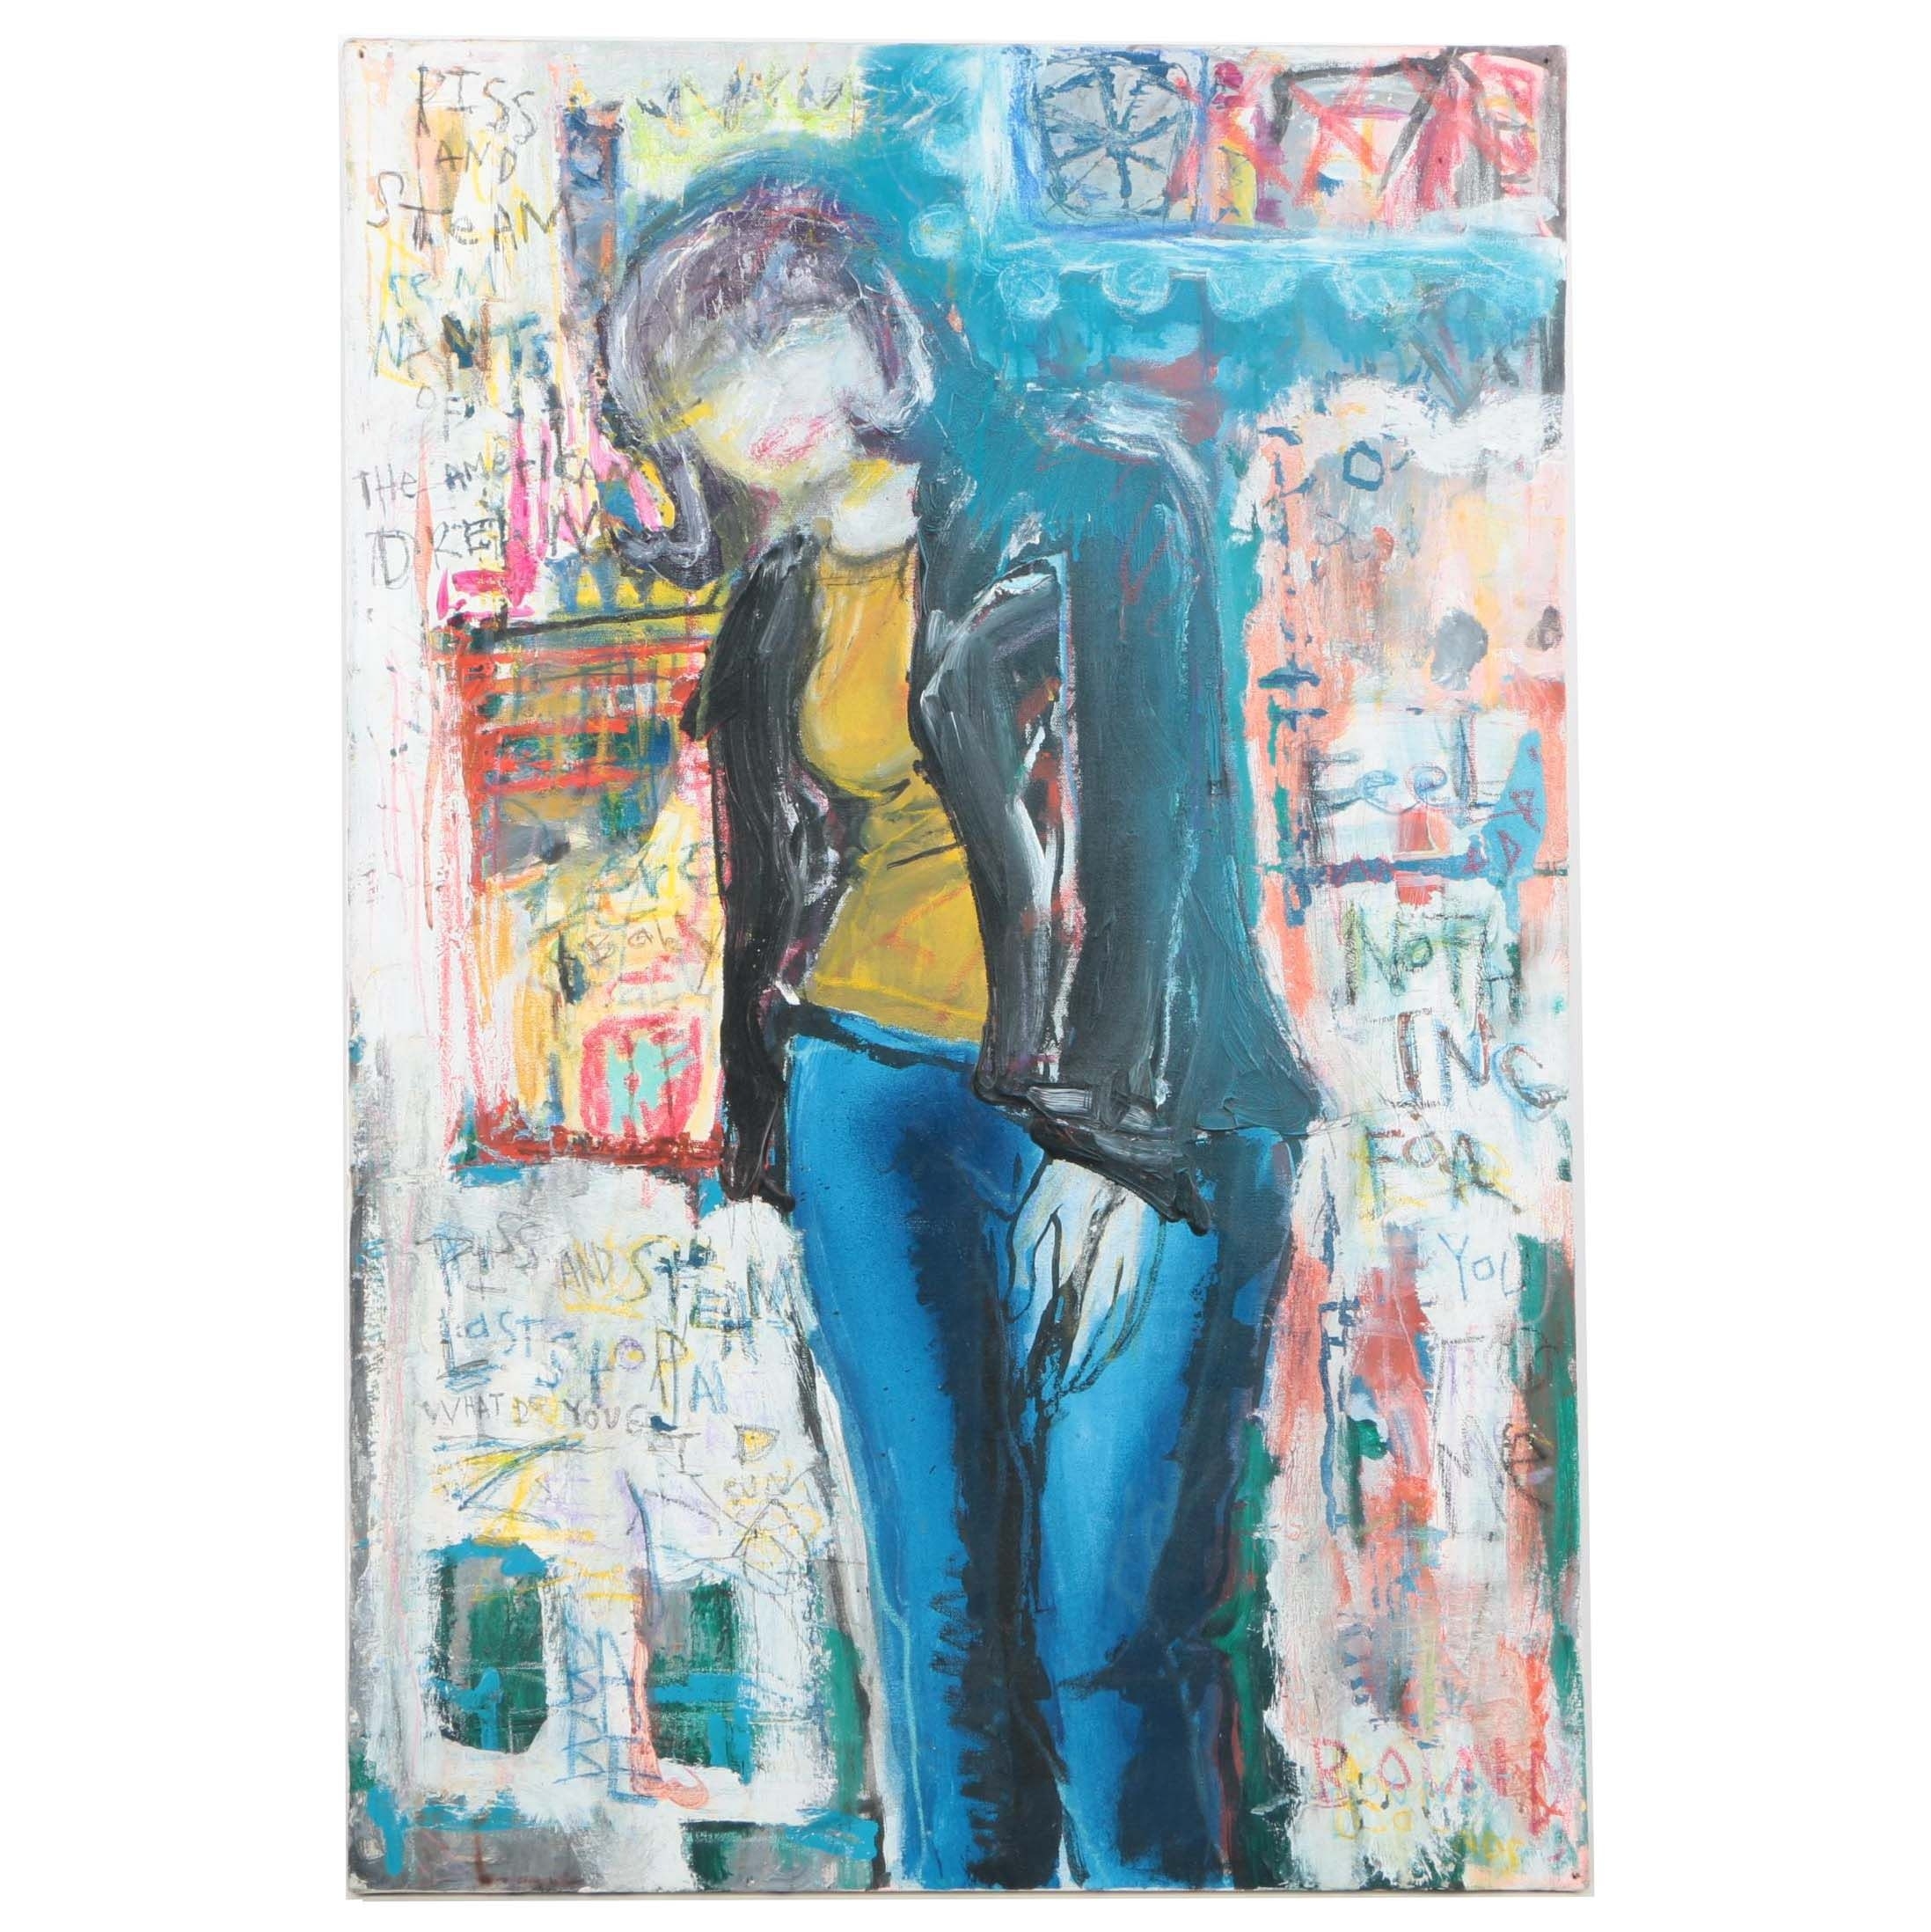 Mixed Media Painting of a Woman in Blue Jeans